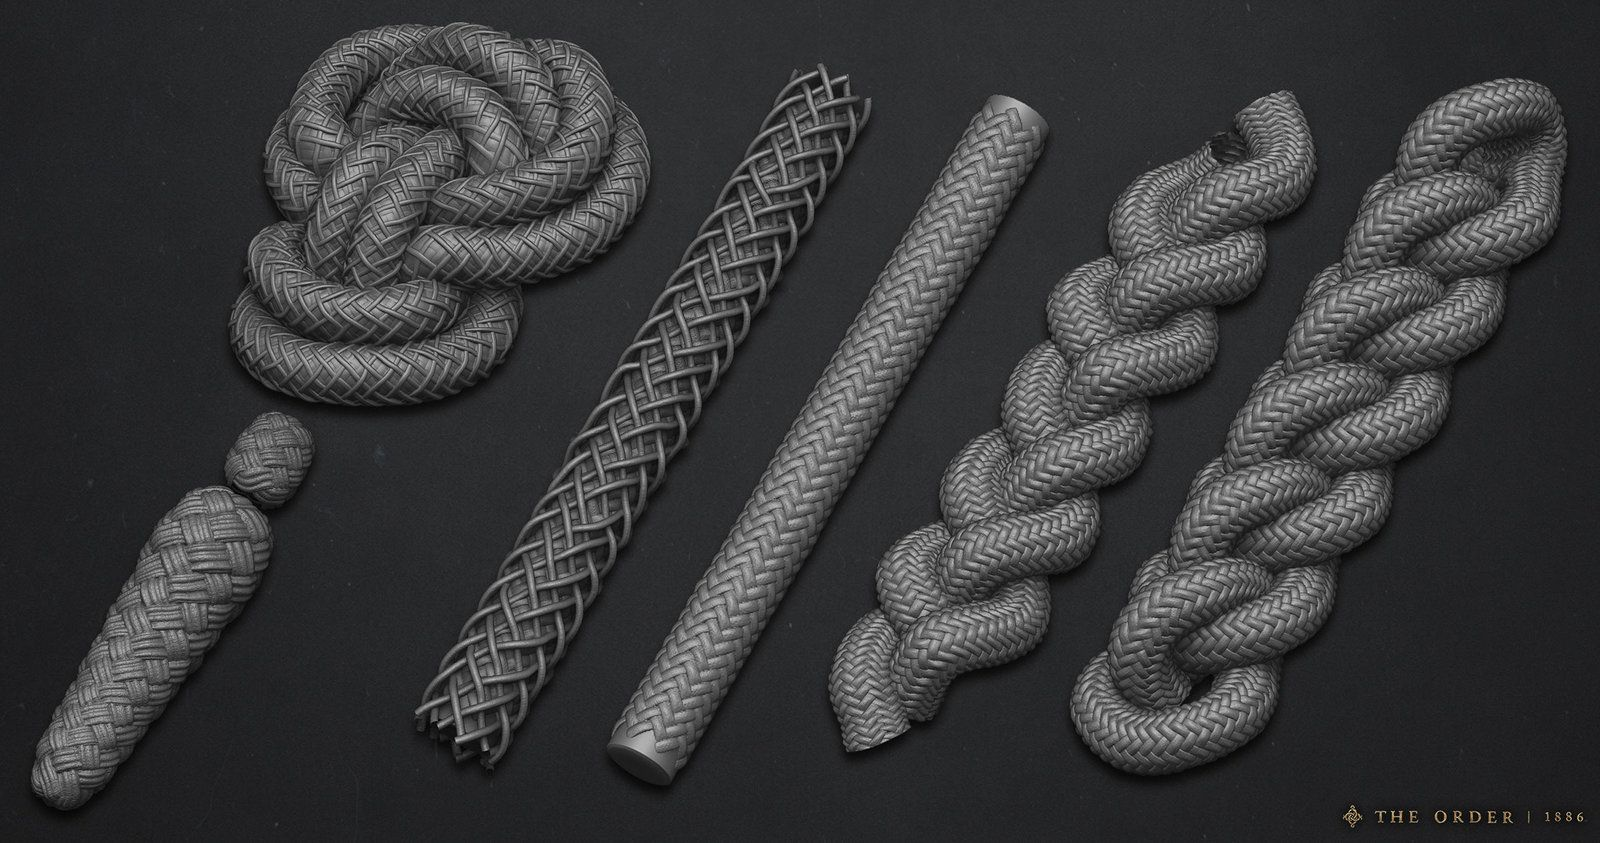 Knight Uniform Rope and Aiguillettes, Nathan Phail-Liff on ArtStation at https://www.artstation.com/artwork/knight-uniform-cording-and-rope-c5c96935-0ada-4660-9546-f969ba42e0c0